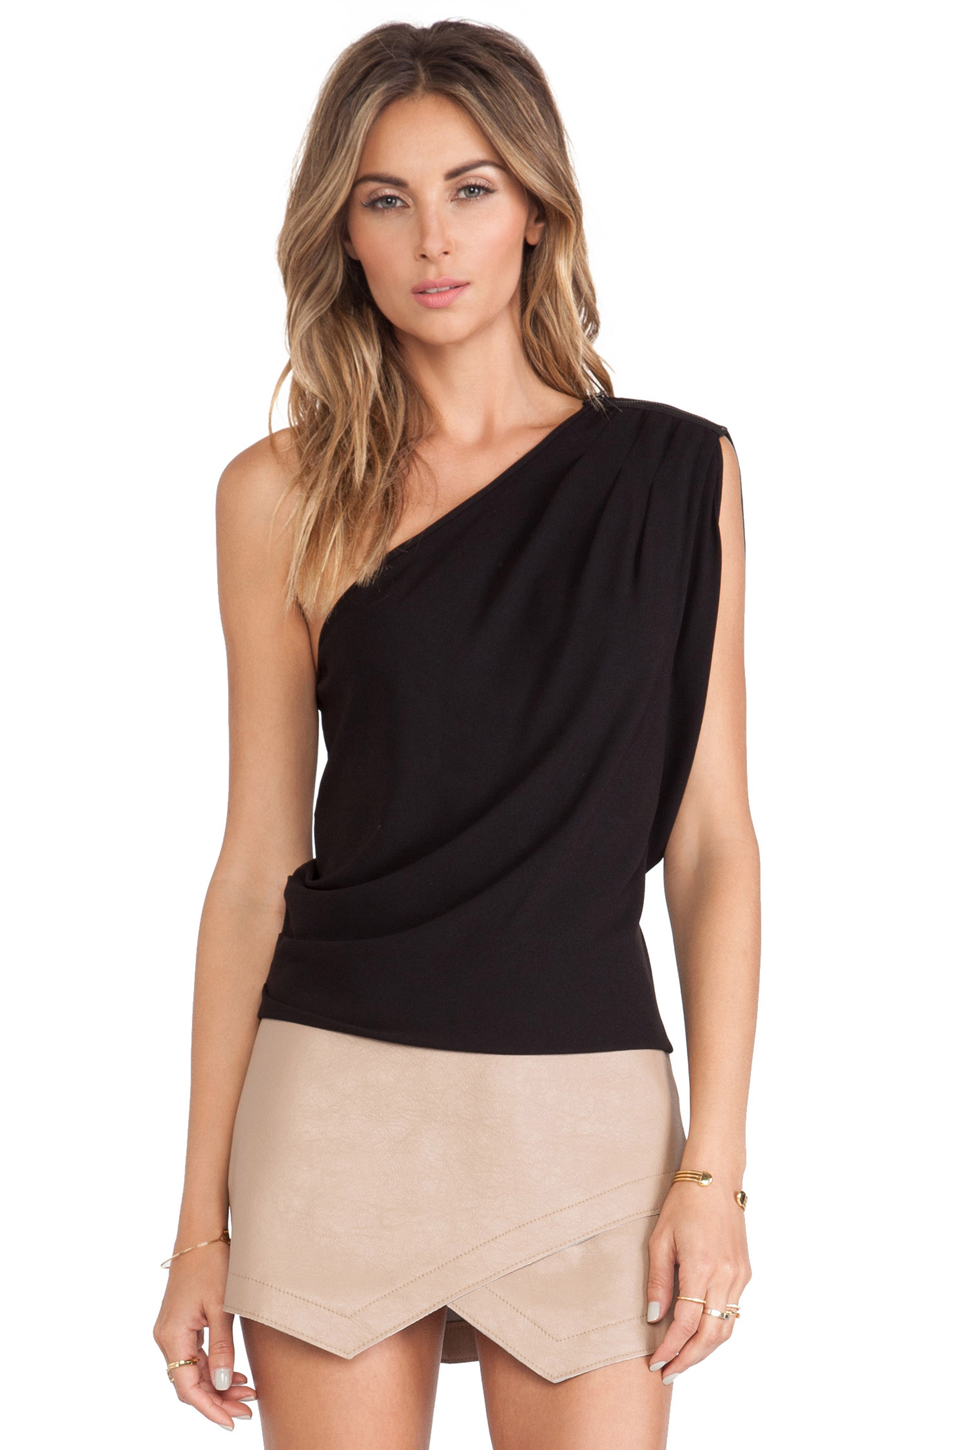 One Shoulder Tops. One-shoulder tops have a modern, contemporary feel to them, making them ideal for freshening up everyday outfits such as worldofweapons.tk slinky sleeveless one-shoulder designs to floaty batwings and long sleeves, there's a style for every occasion that'll make you feel amazing.